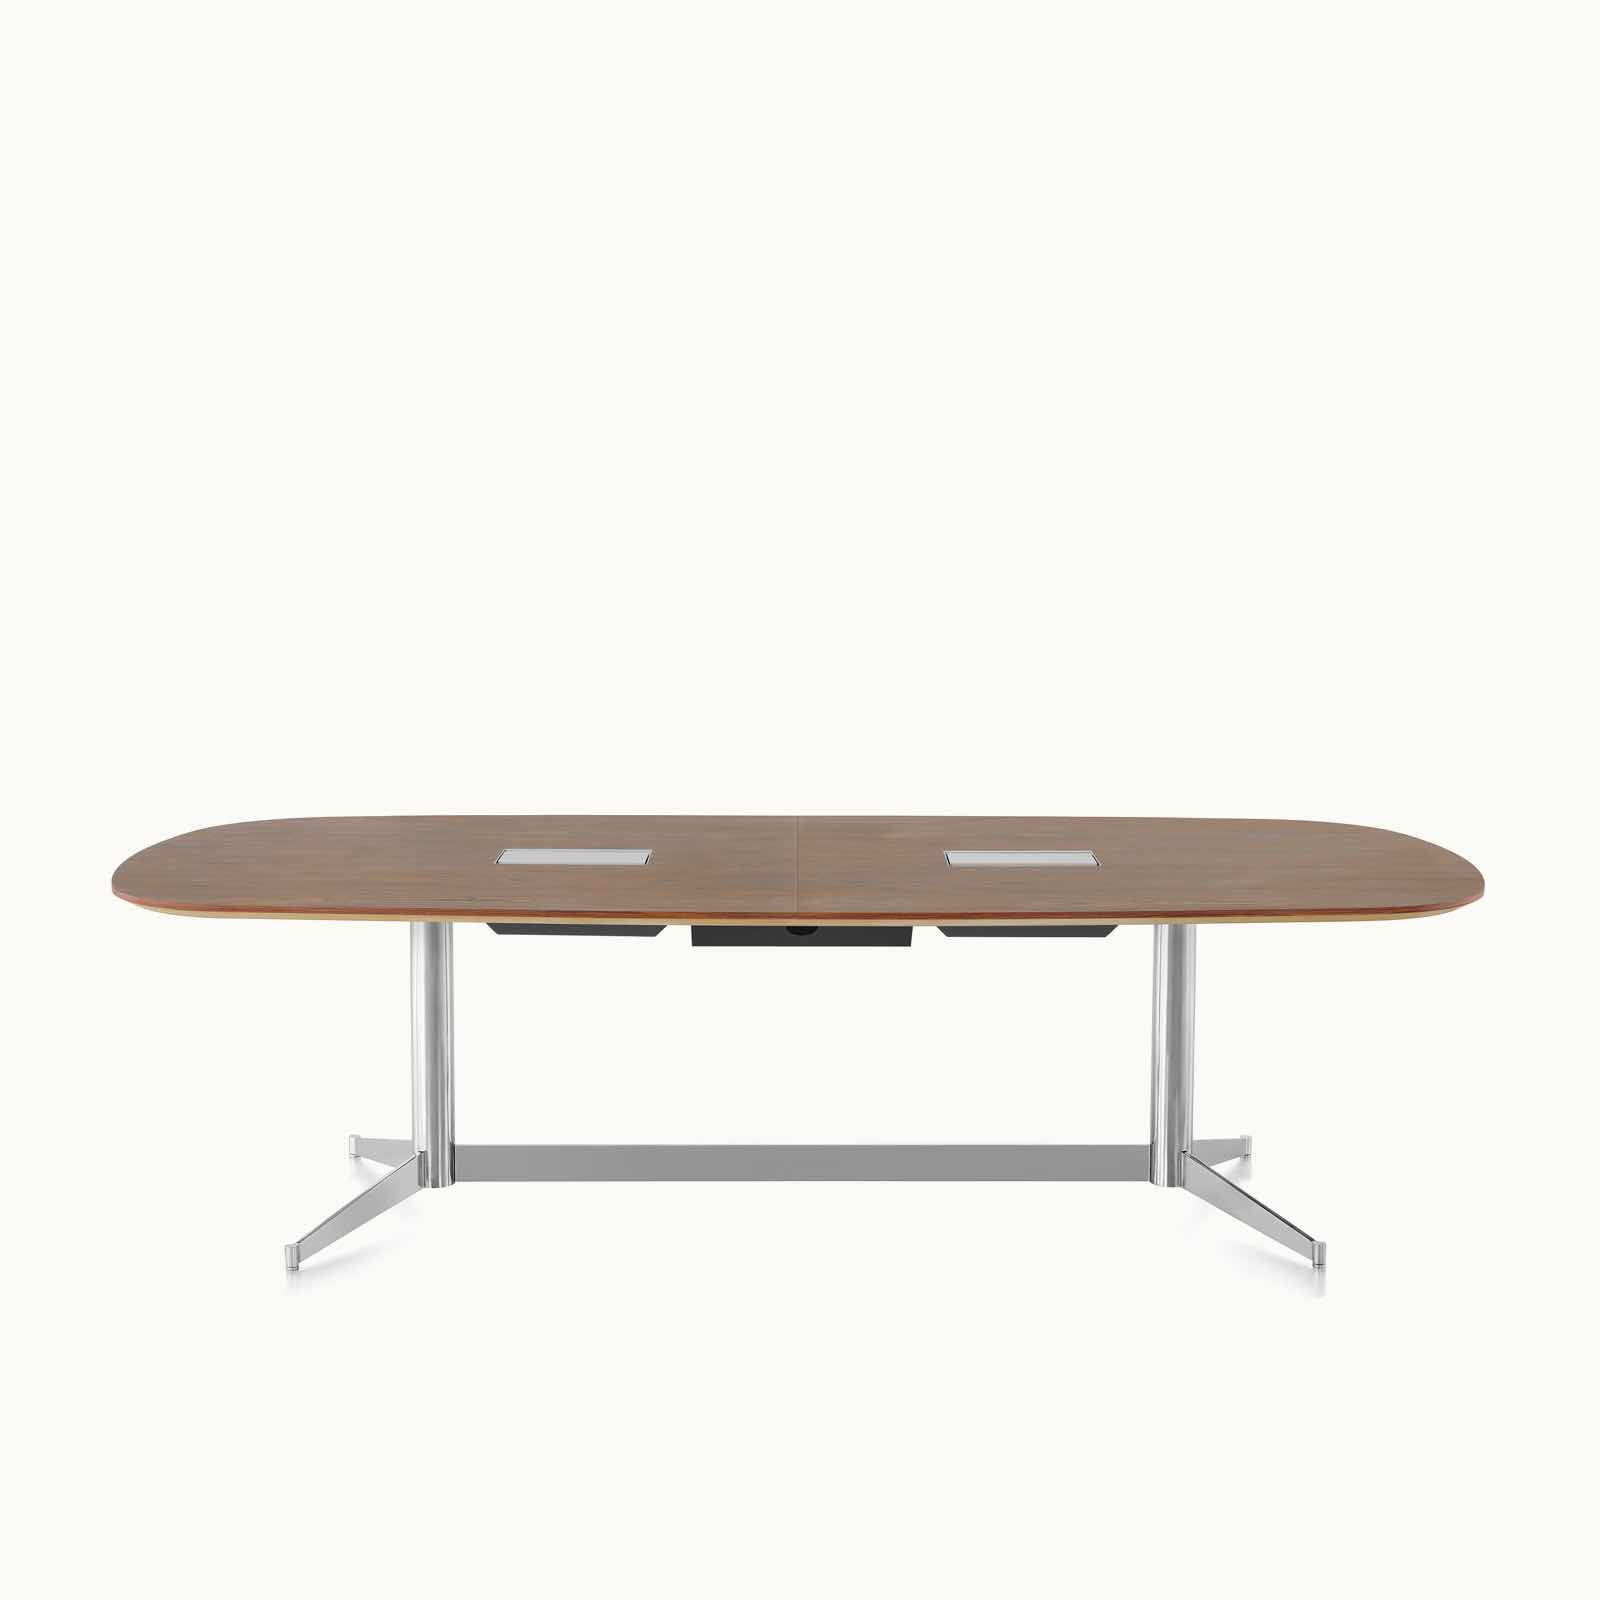 An oblong MP Conference Table with a medium-tone recograin rosewood finish, viewed from the front.